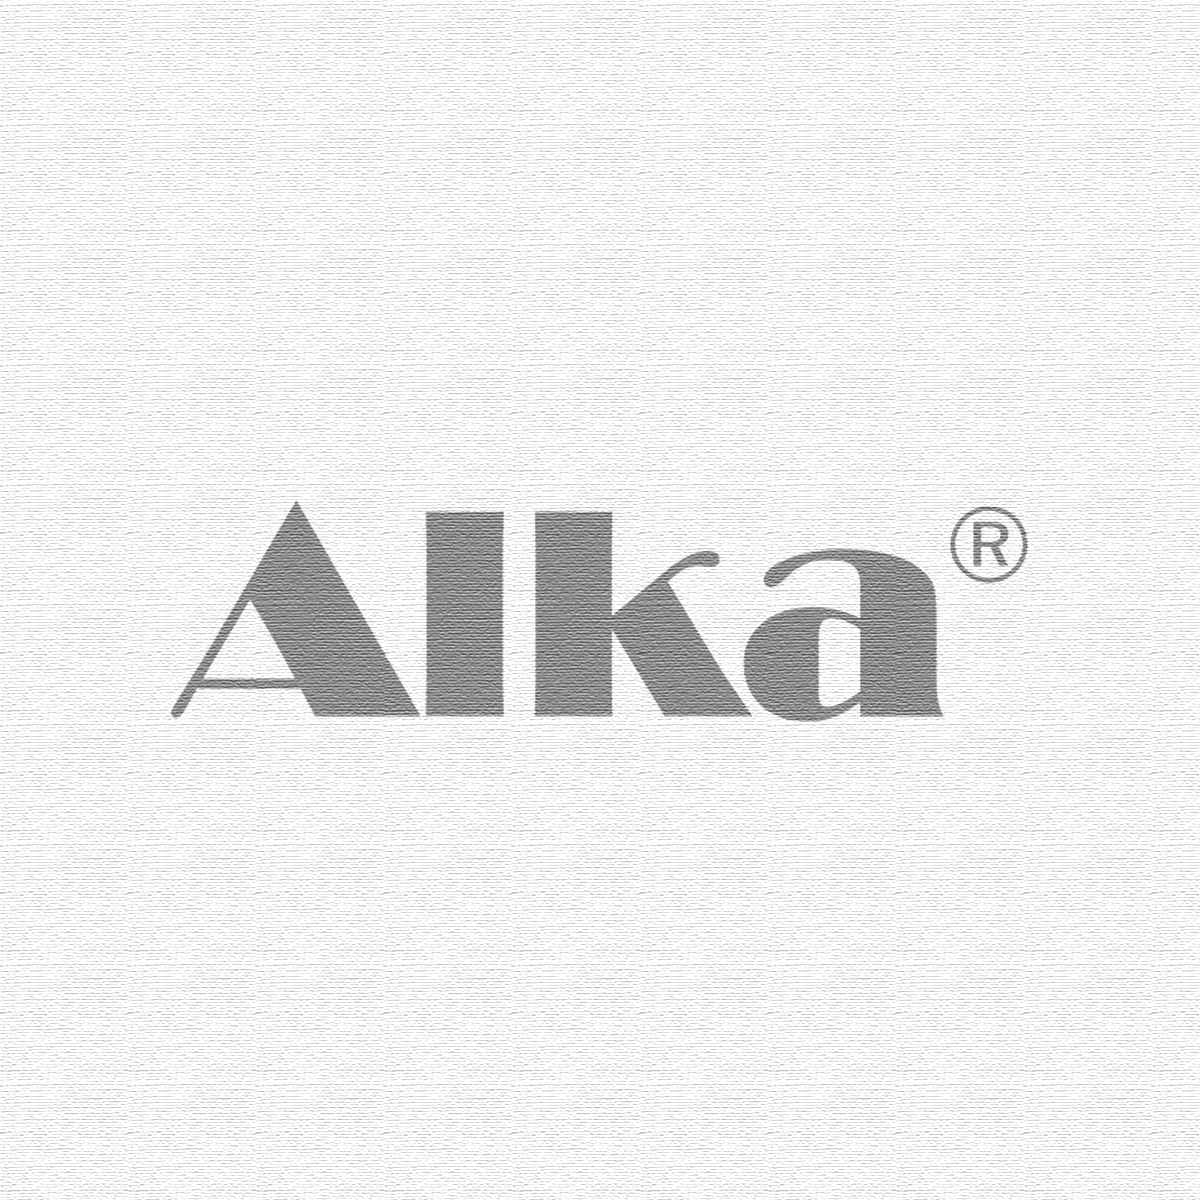 Alka® Drops - 37ml - Italian label